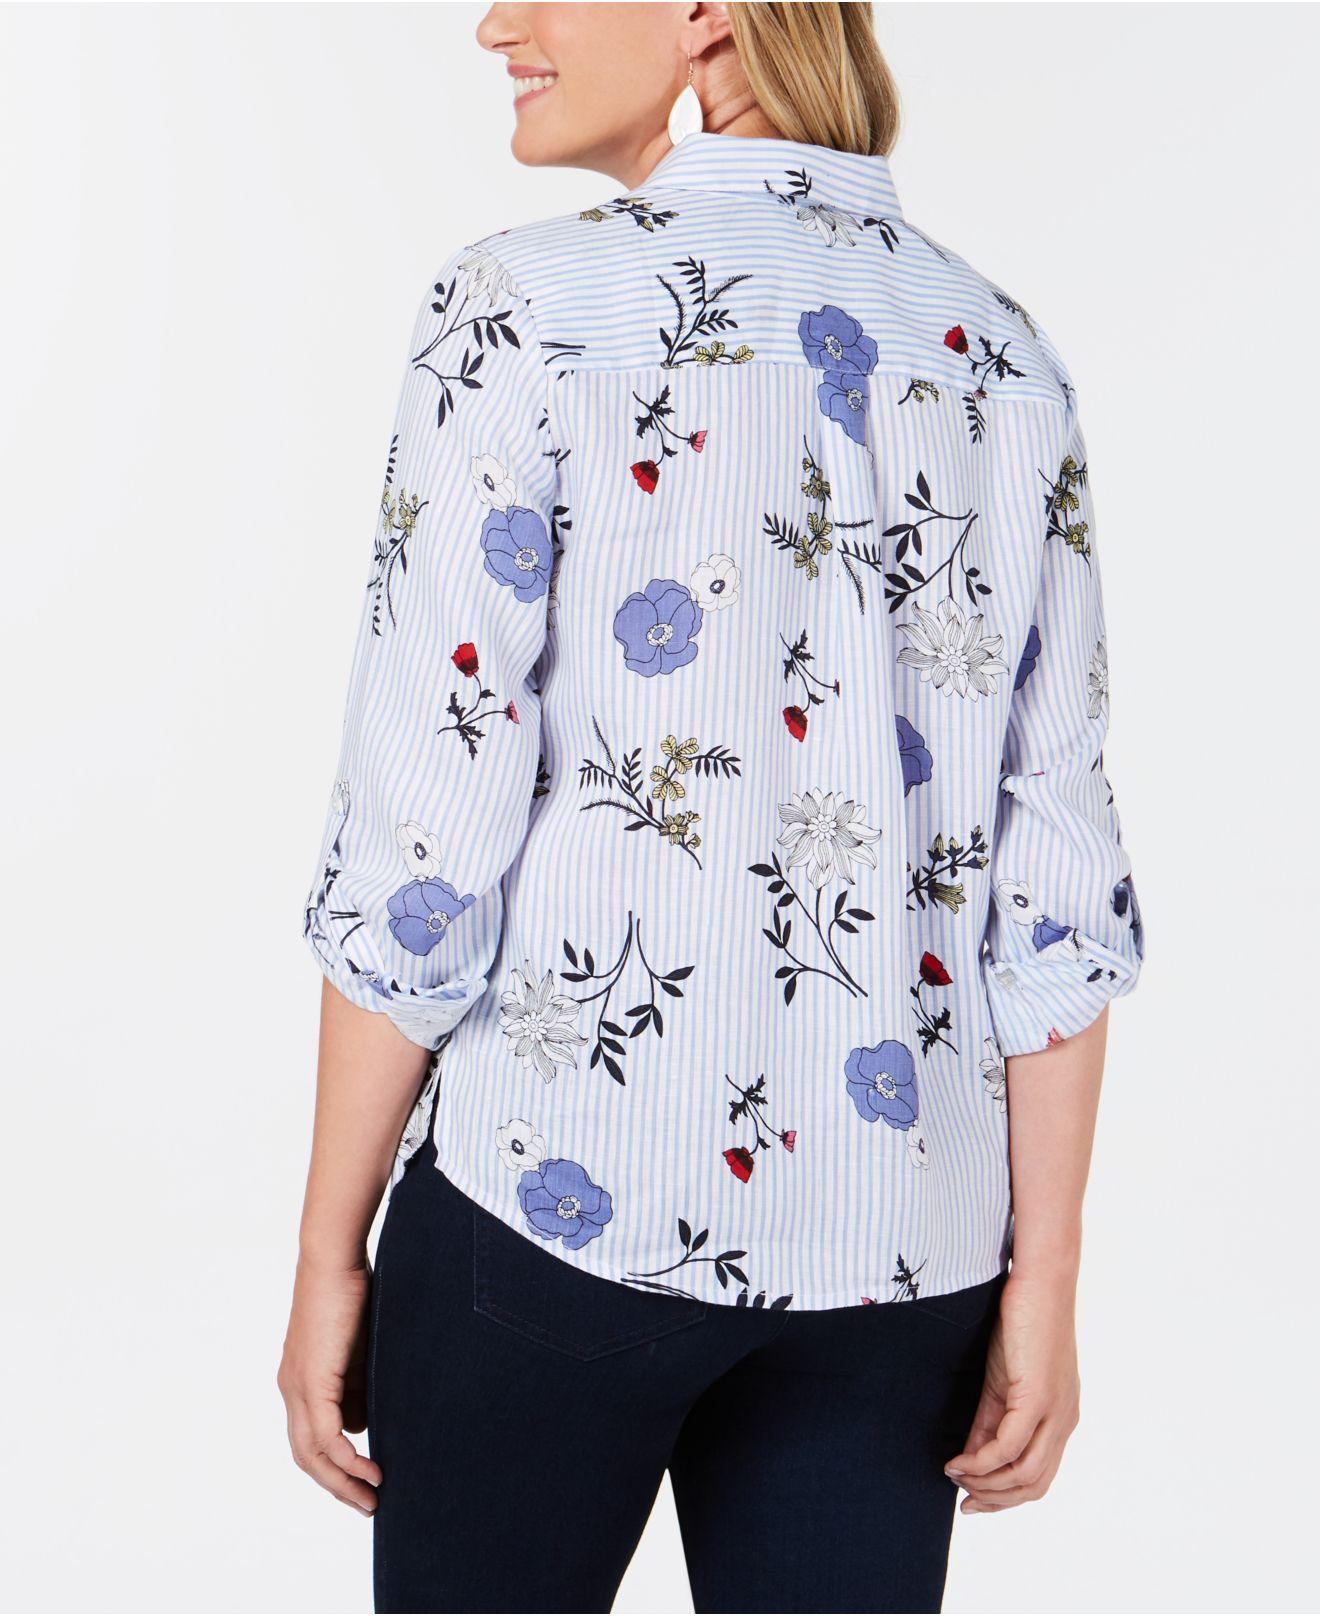 023f2aa6a857cc Lyst - Charter Club Petite Linen Printed Button-up Top